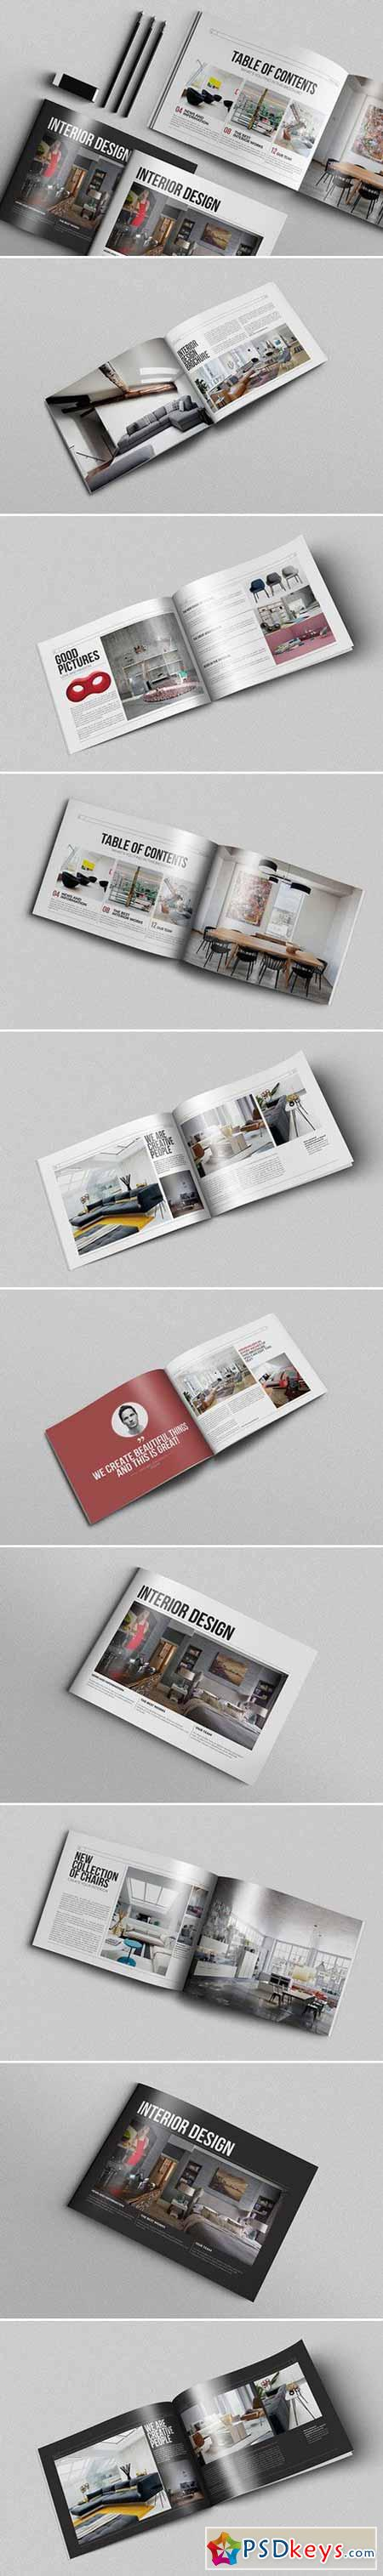 Interior Design Brochure 438269